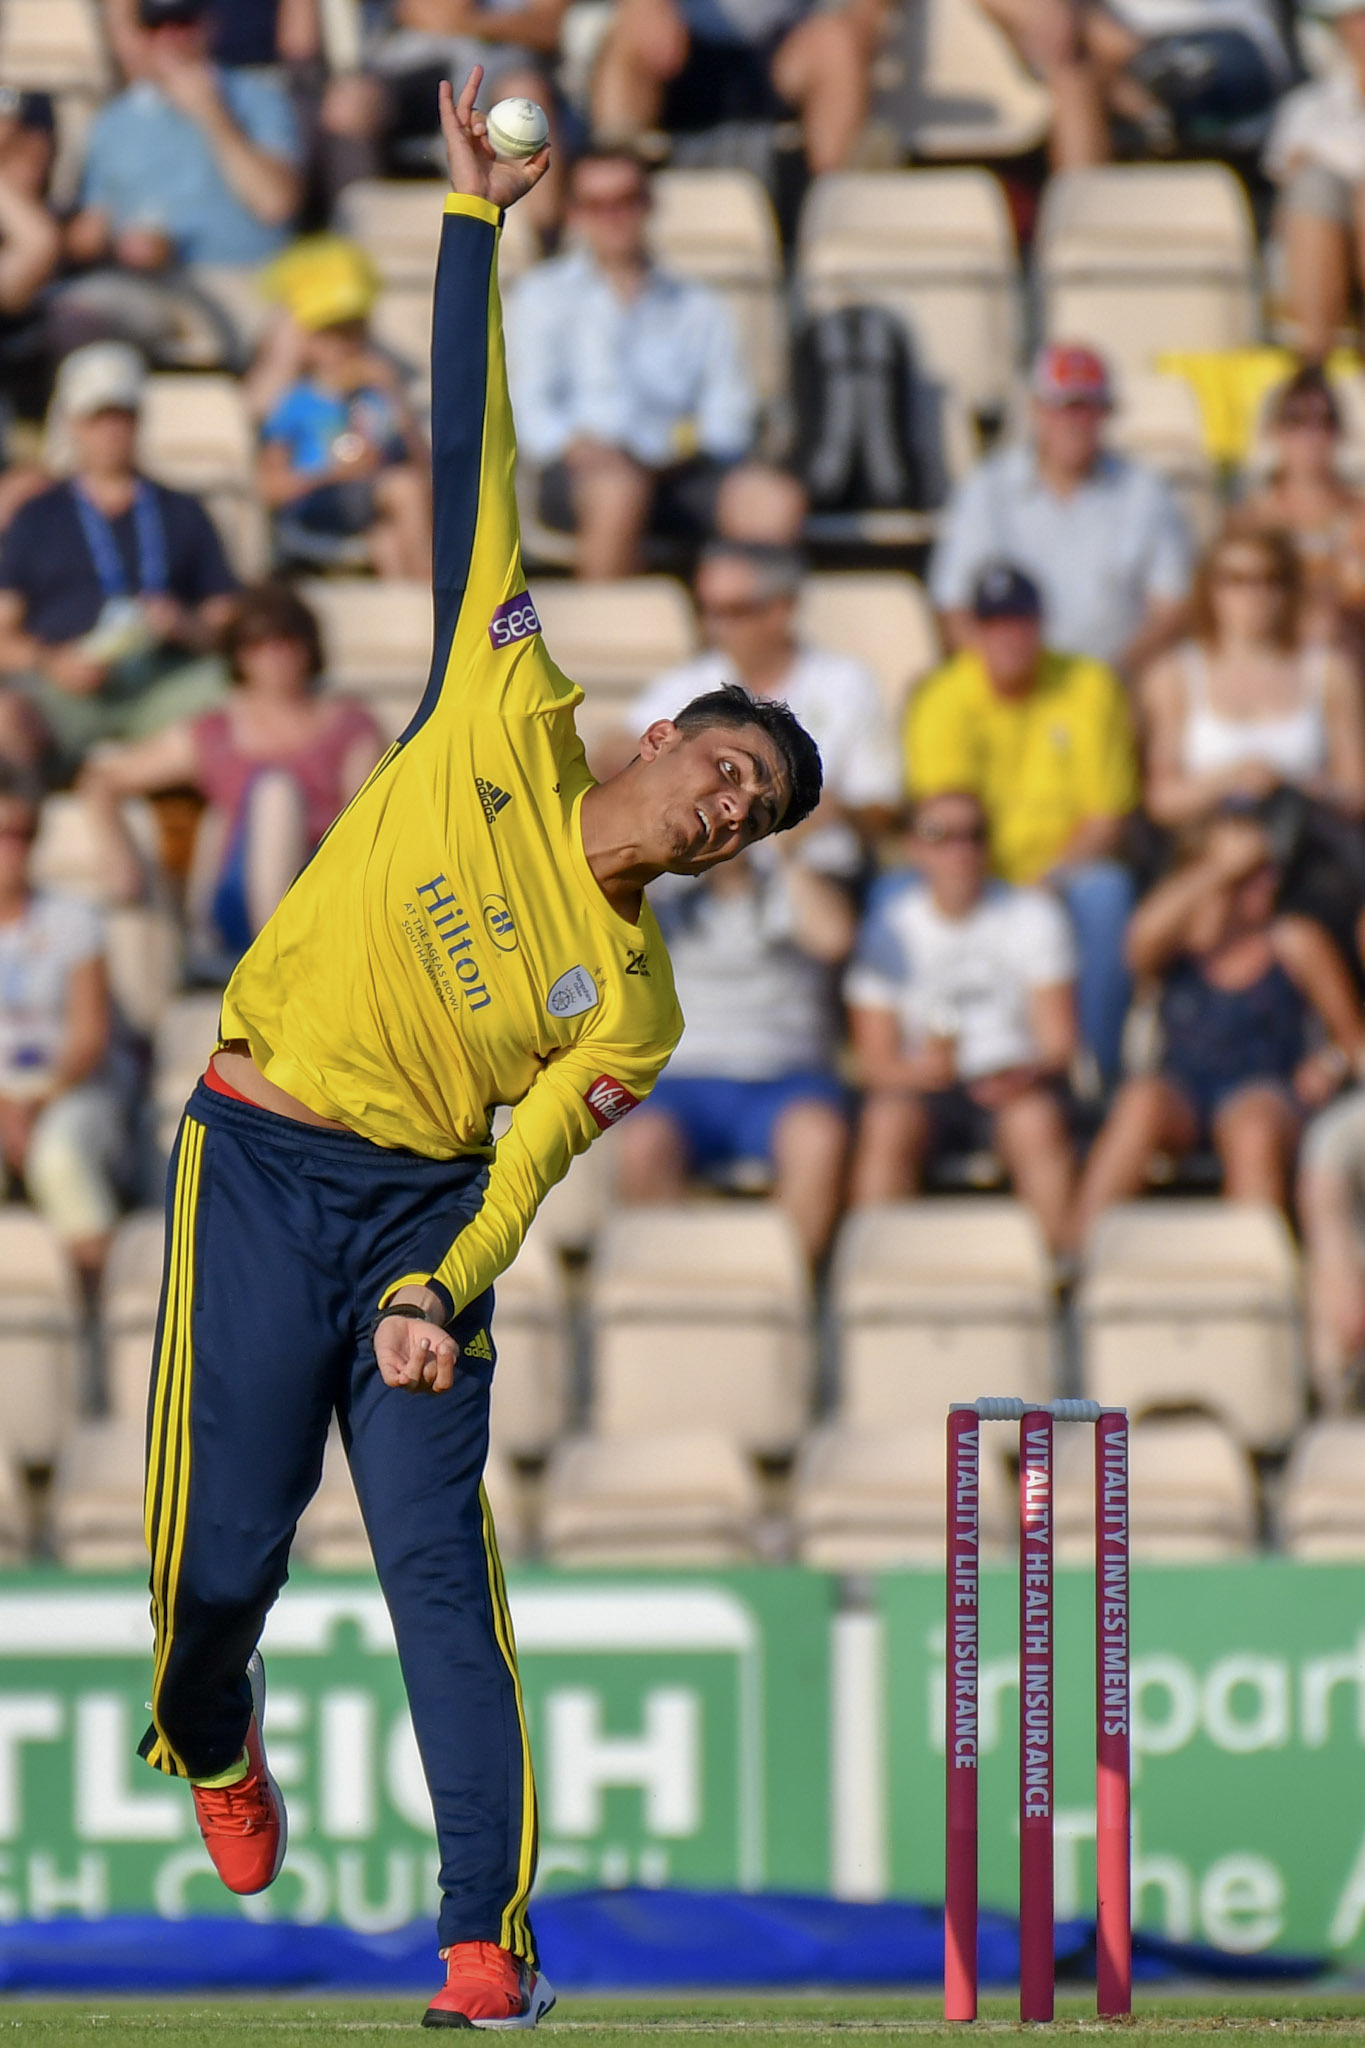 Mujeeb Ur Rahman bowling in the Vitality Blast (Photo  by Michael Berkeley)